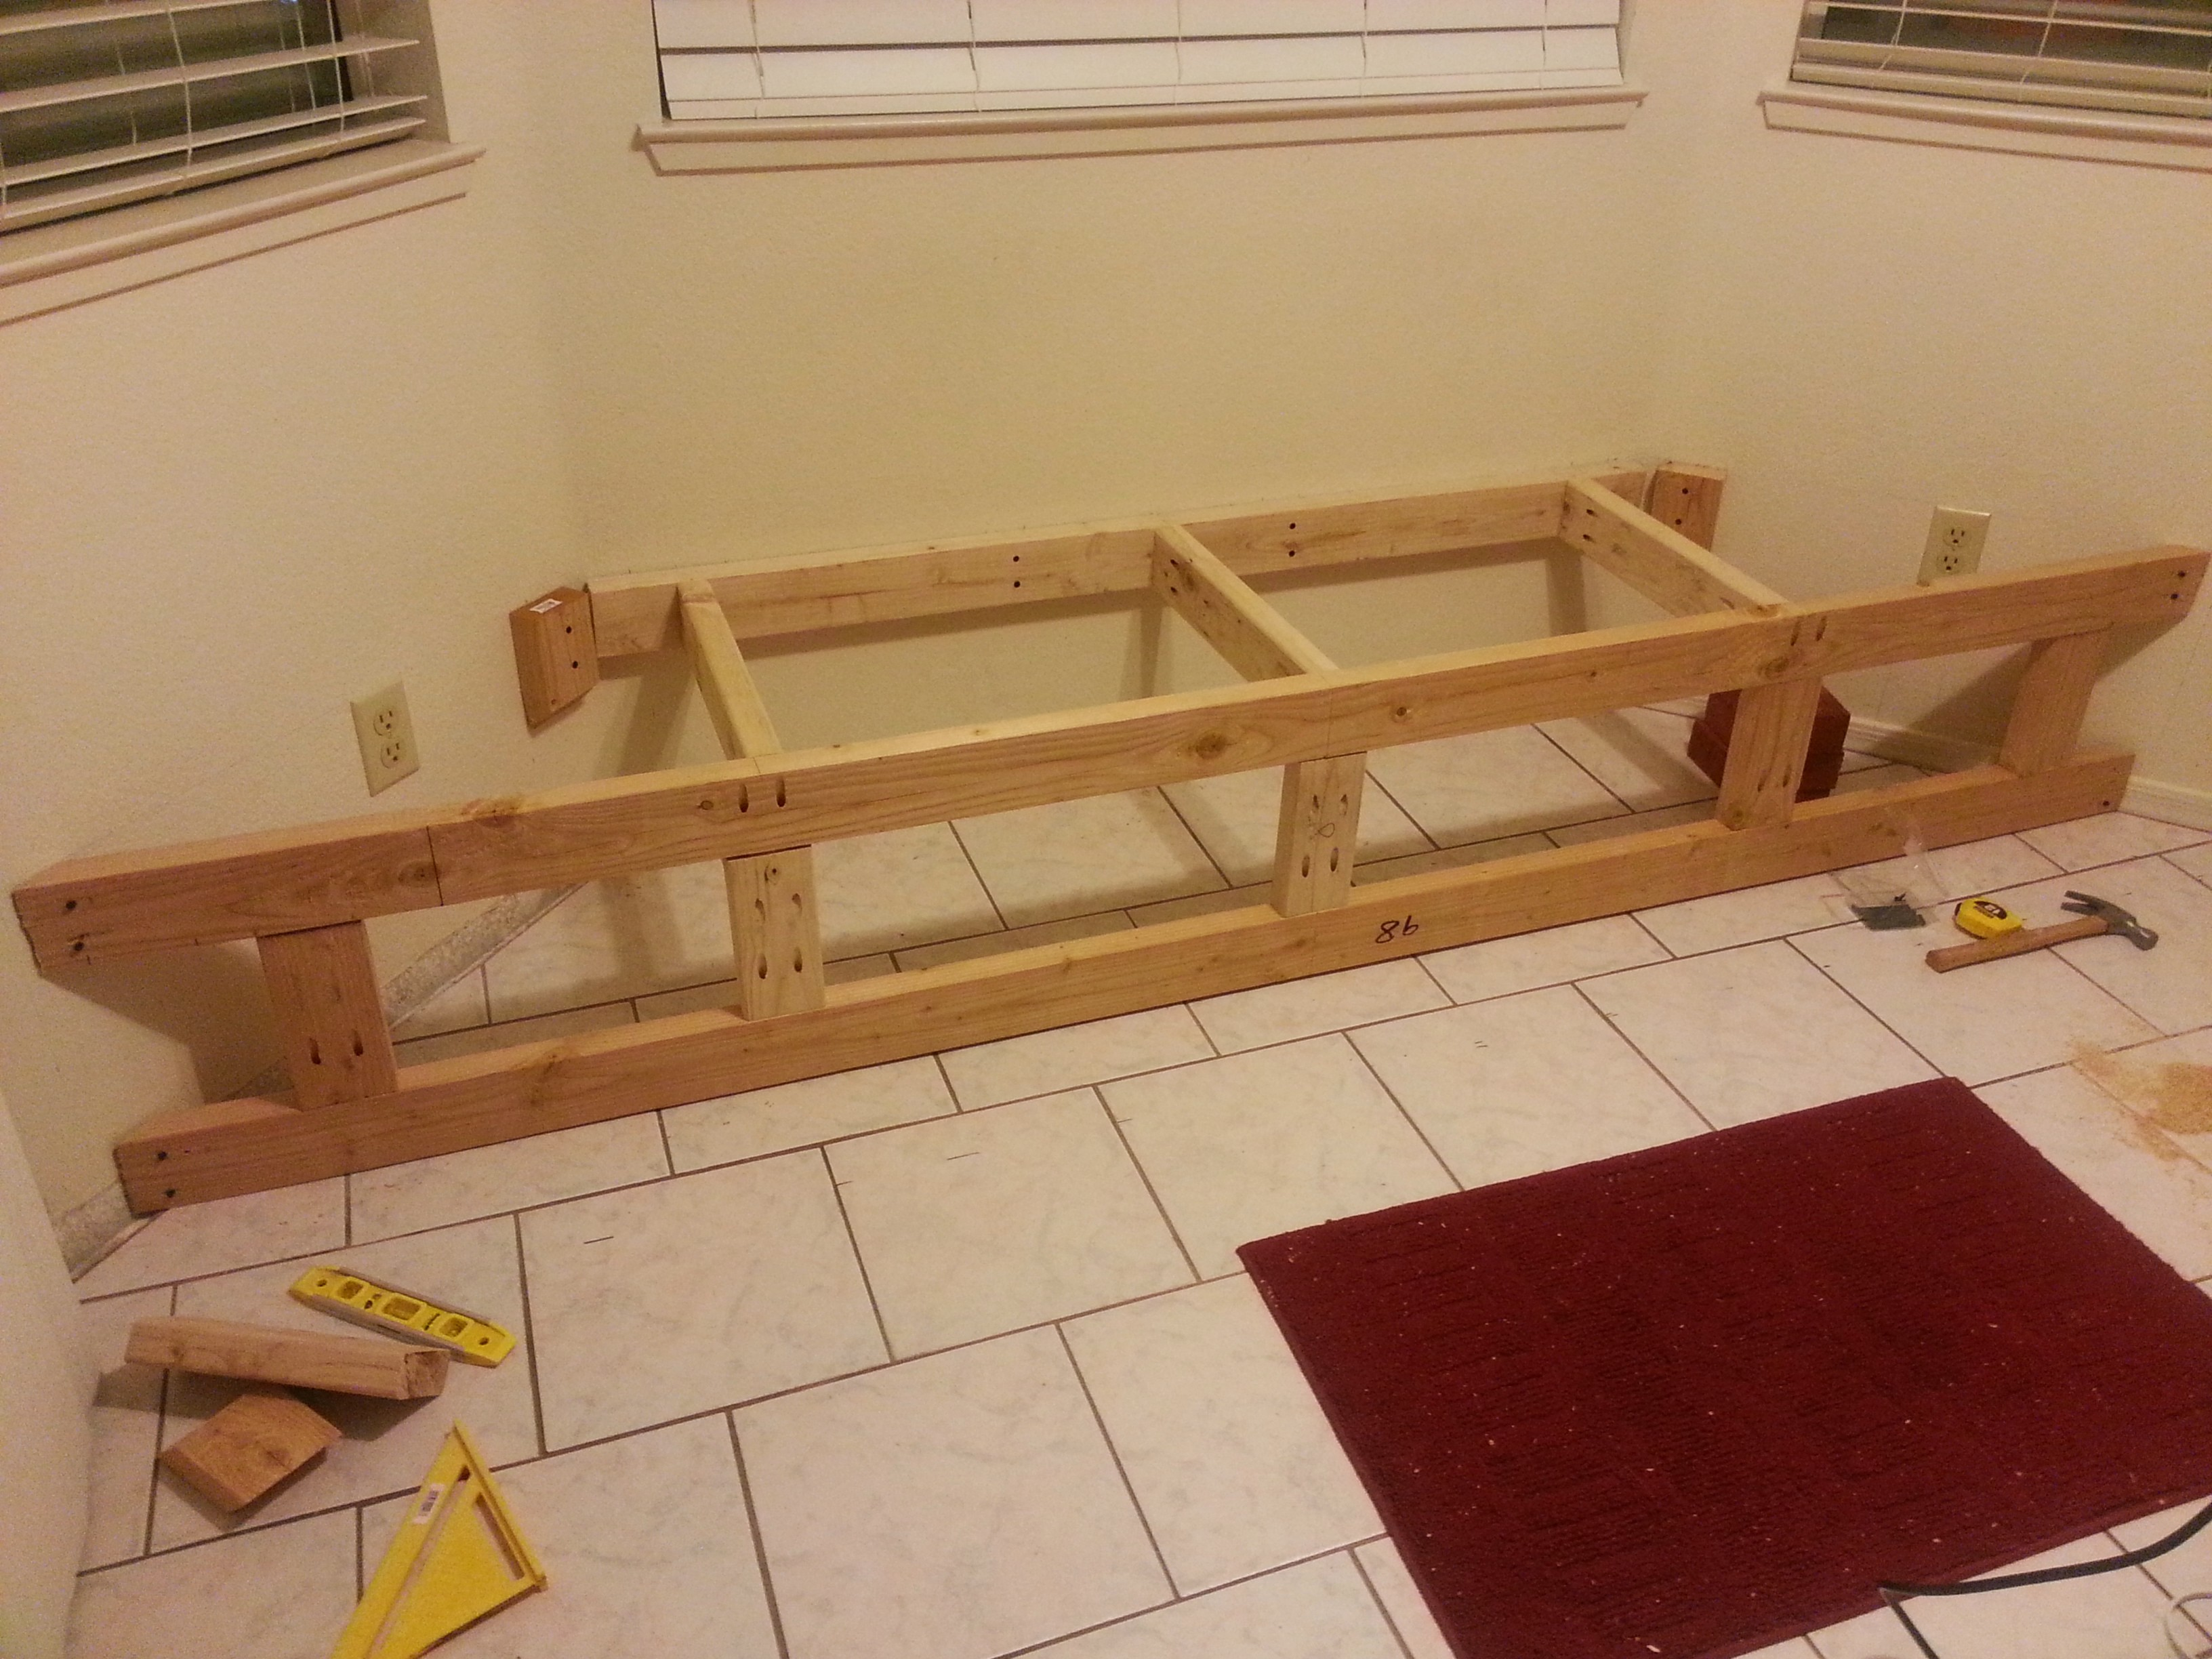 Let s nook reveal home that we built - Kitchen bench diy ...